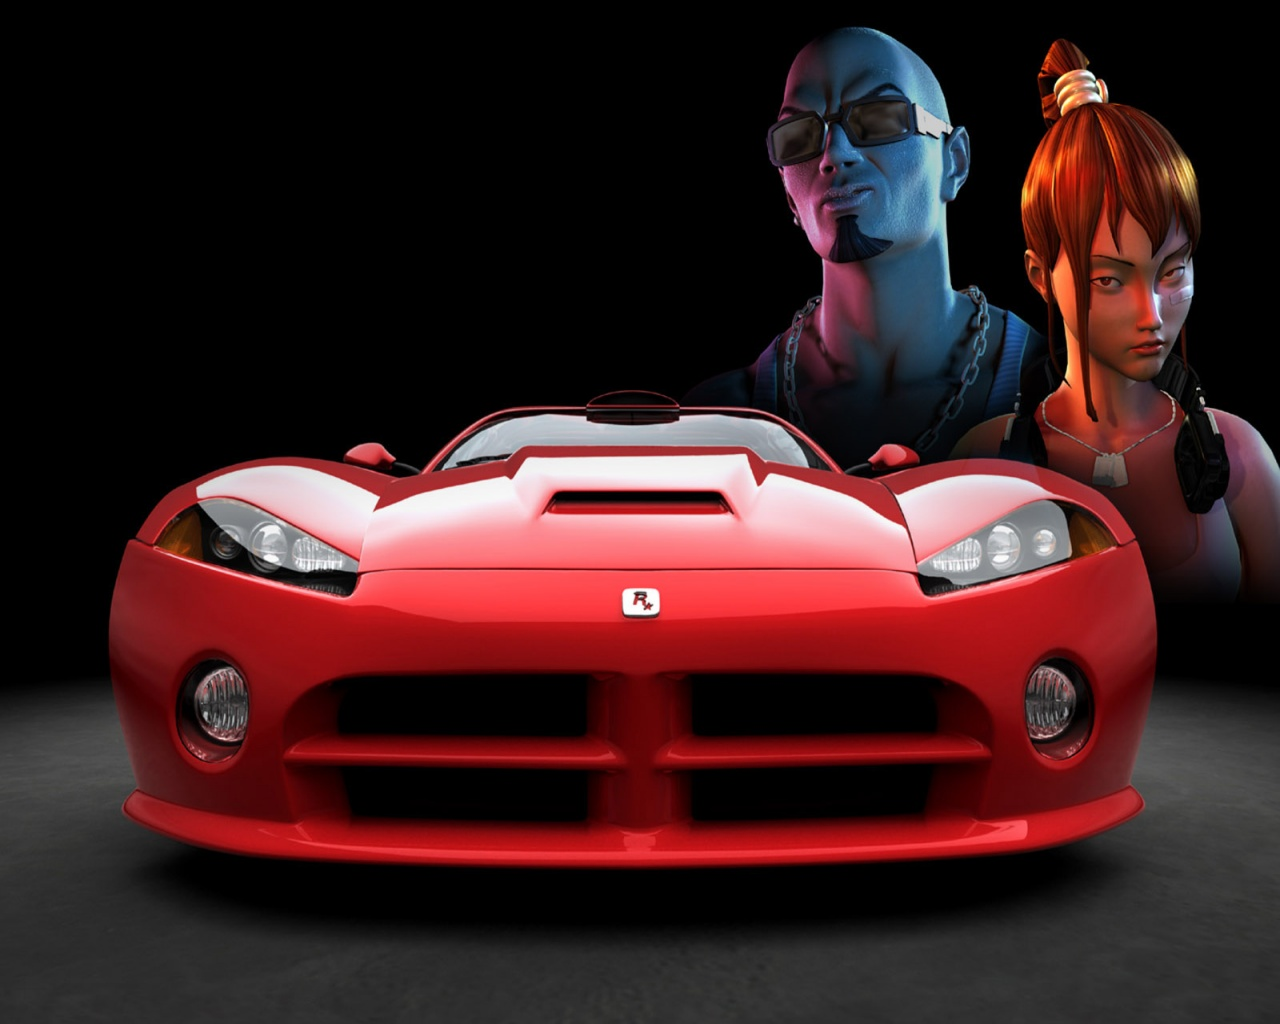 1280x1024 Red sports car desktop wallpapers and stock photos